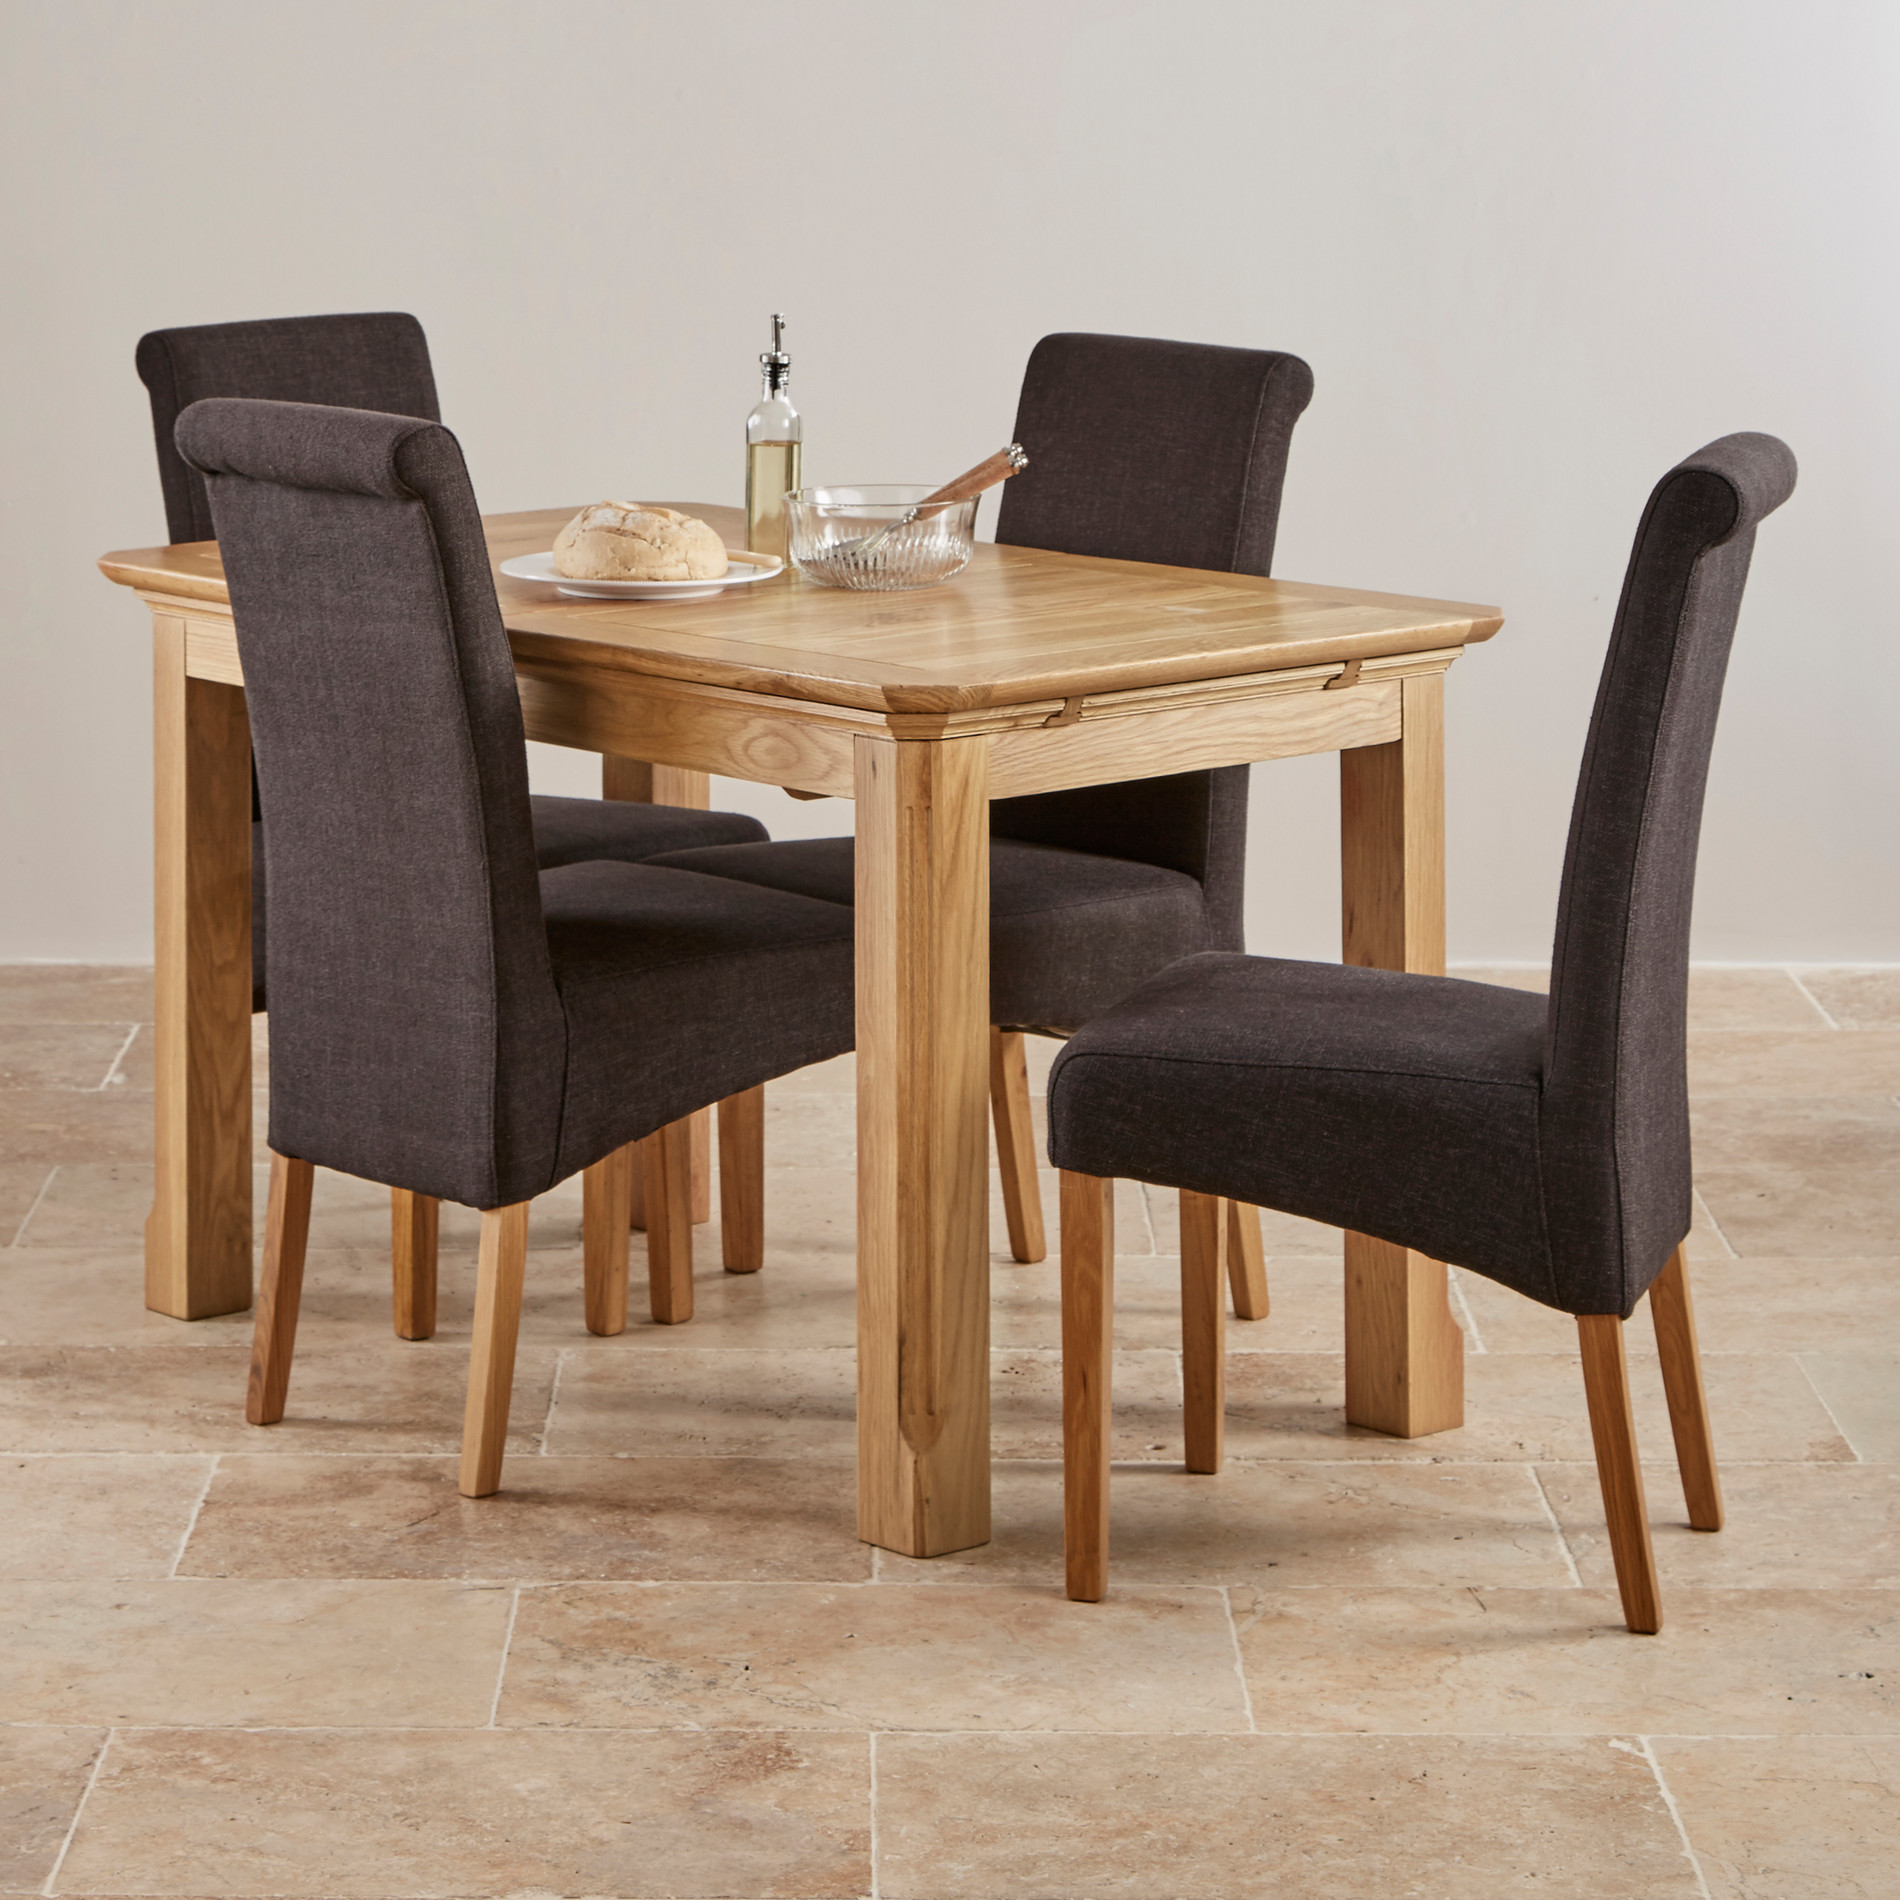 Edinburgh Extending Dining Set In Oak Dining Table 6 Chairs: Edinburgh Natural Solid Oak Dining Set